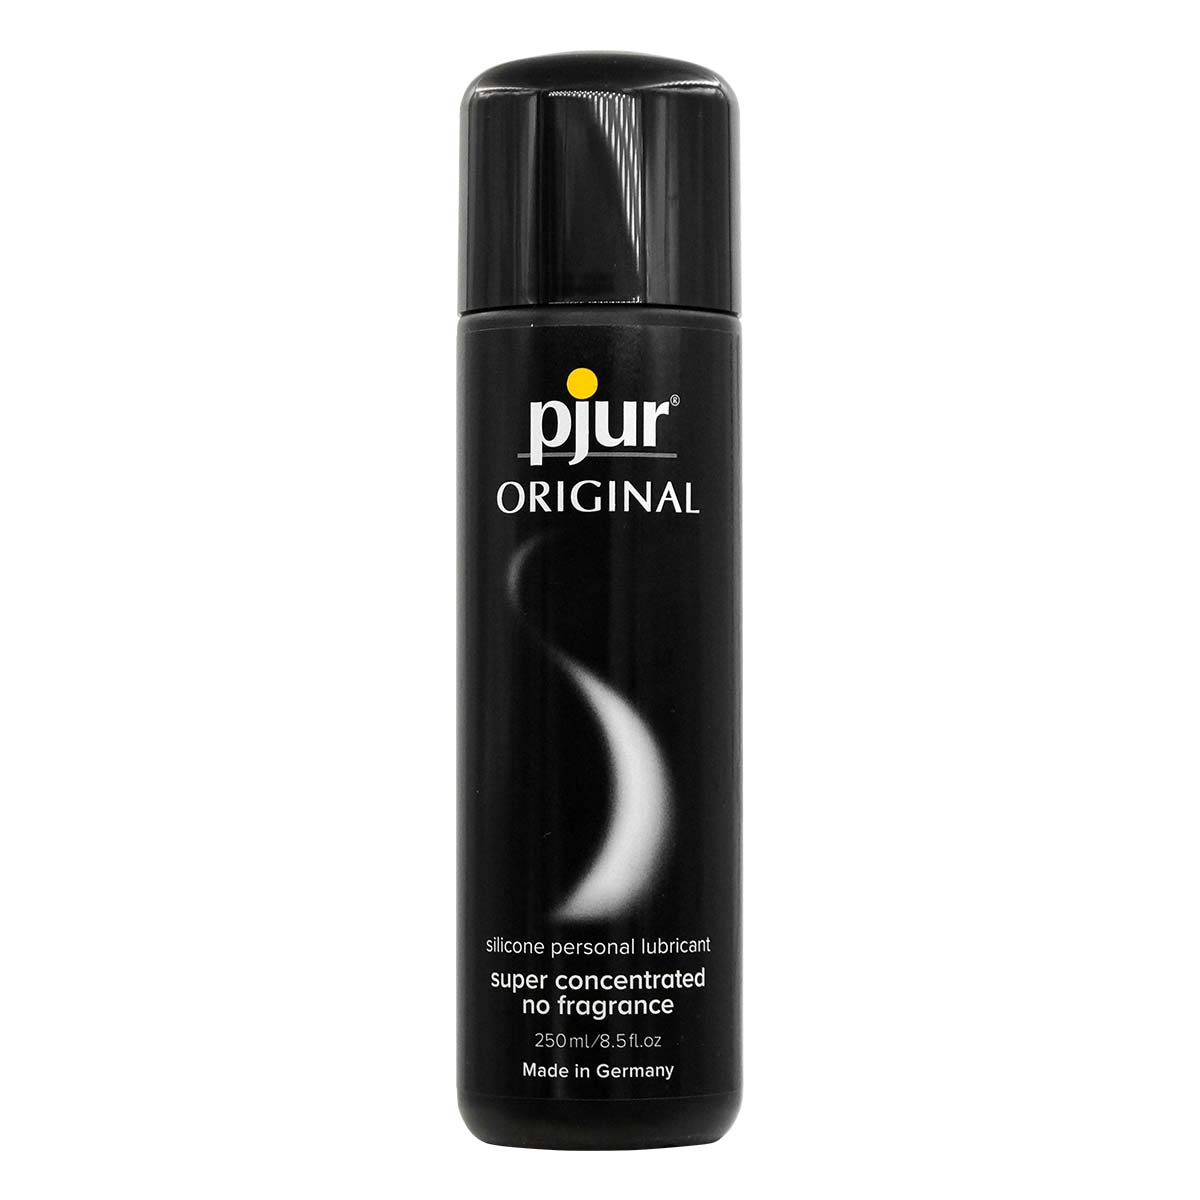 pjur ORIGINAL 250ml Silicone-based Lubricant